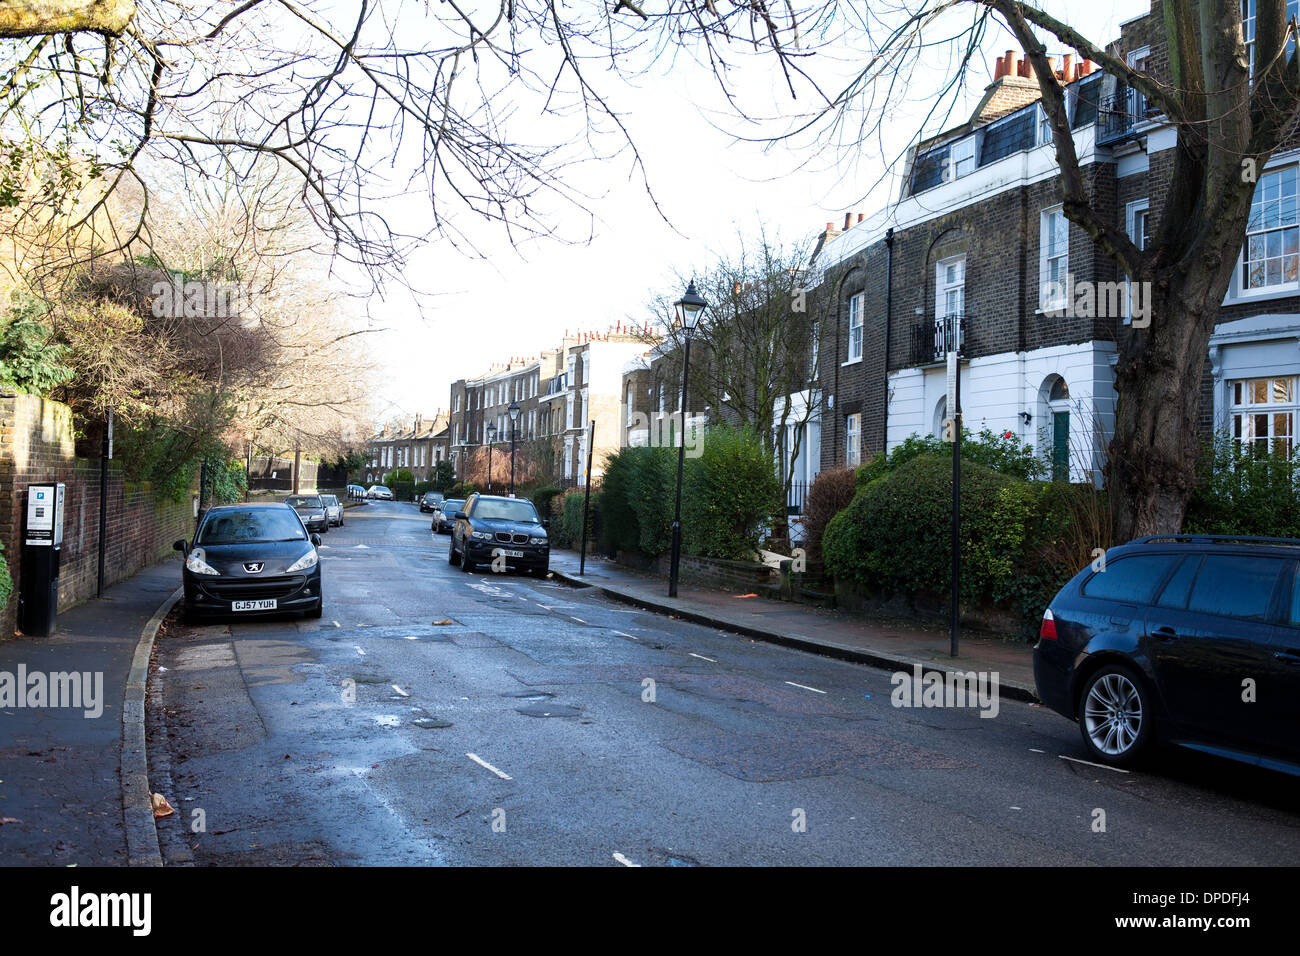 Canonbury Grove, Islington, North London, UK, Great Britain, England - Stock Image